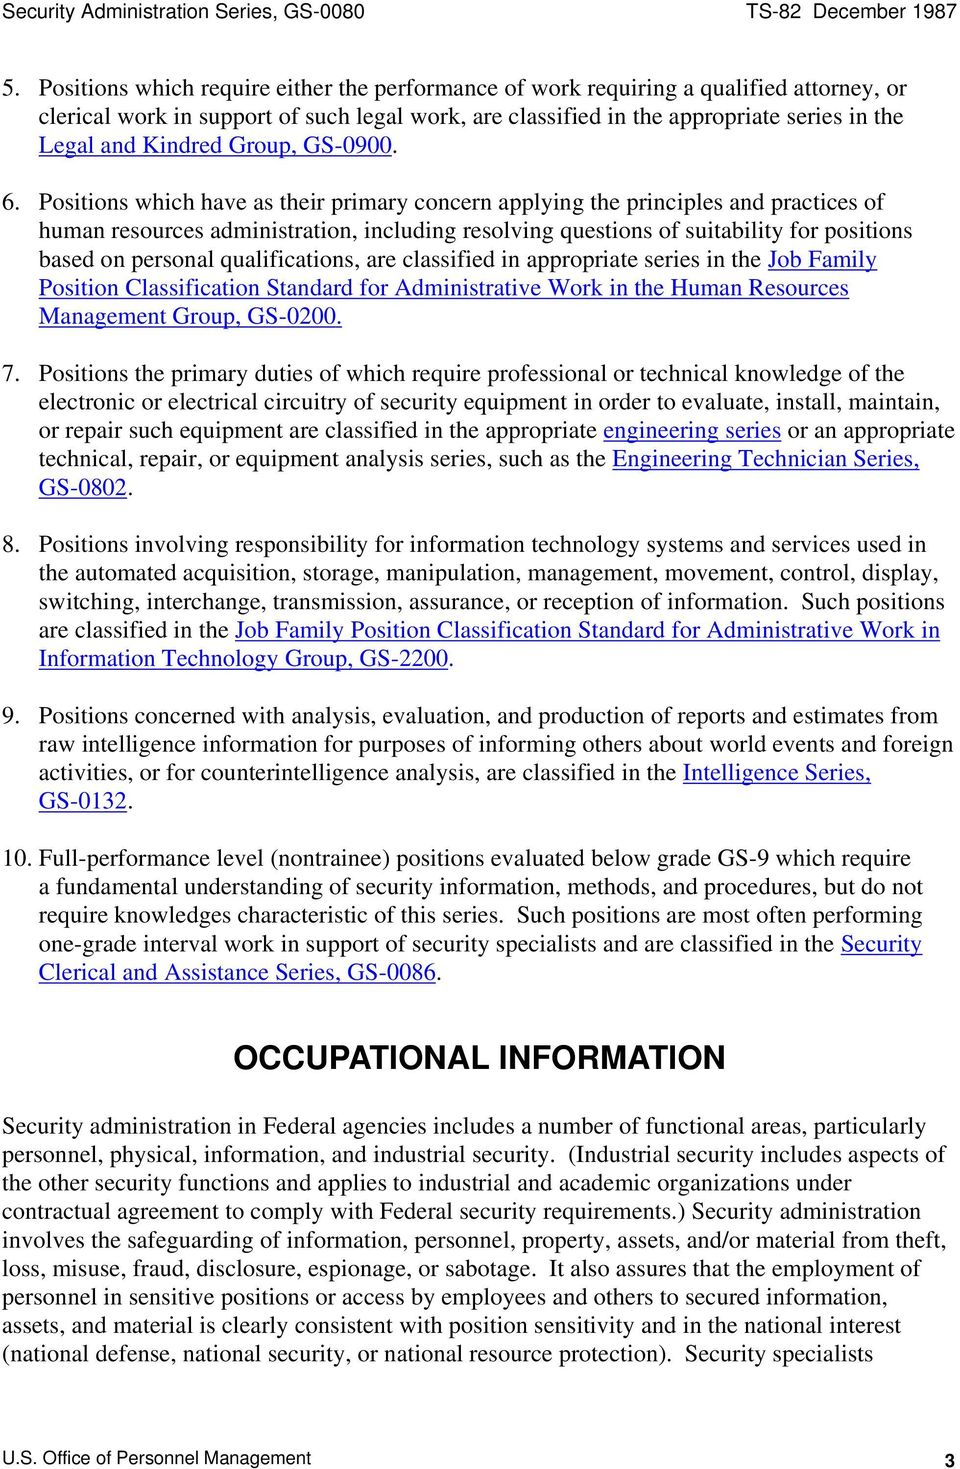 Positions which have as their primary concern applying the principles and practices of human resources administration, including resolving questions of suitability for positions based on personal